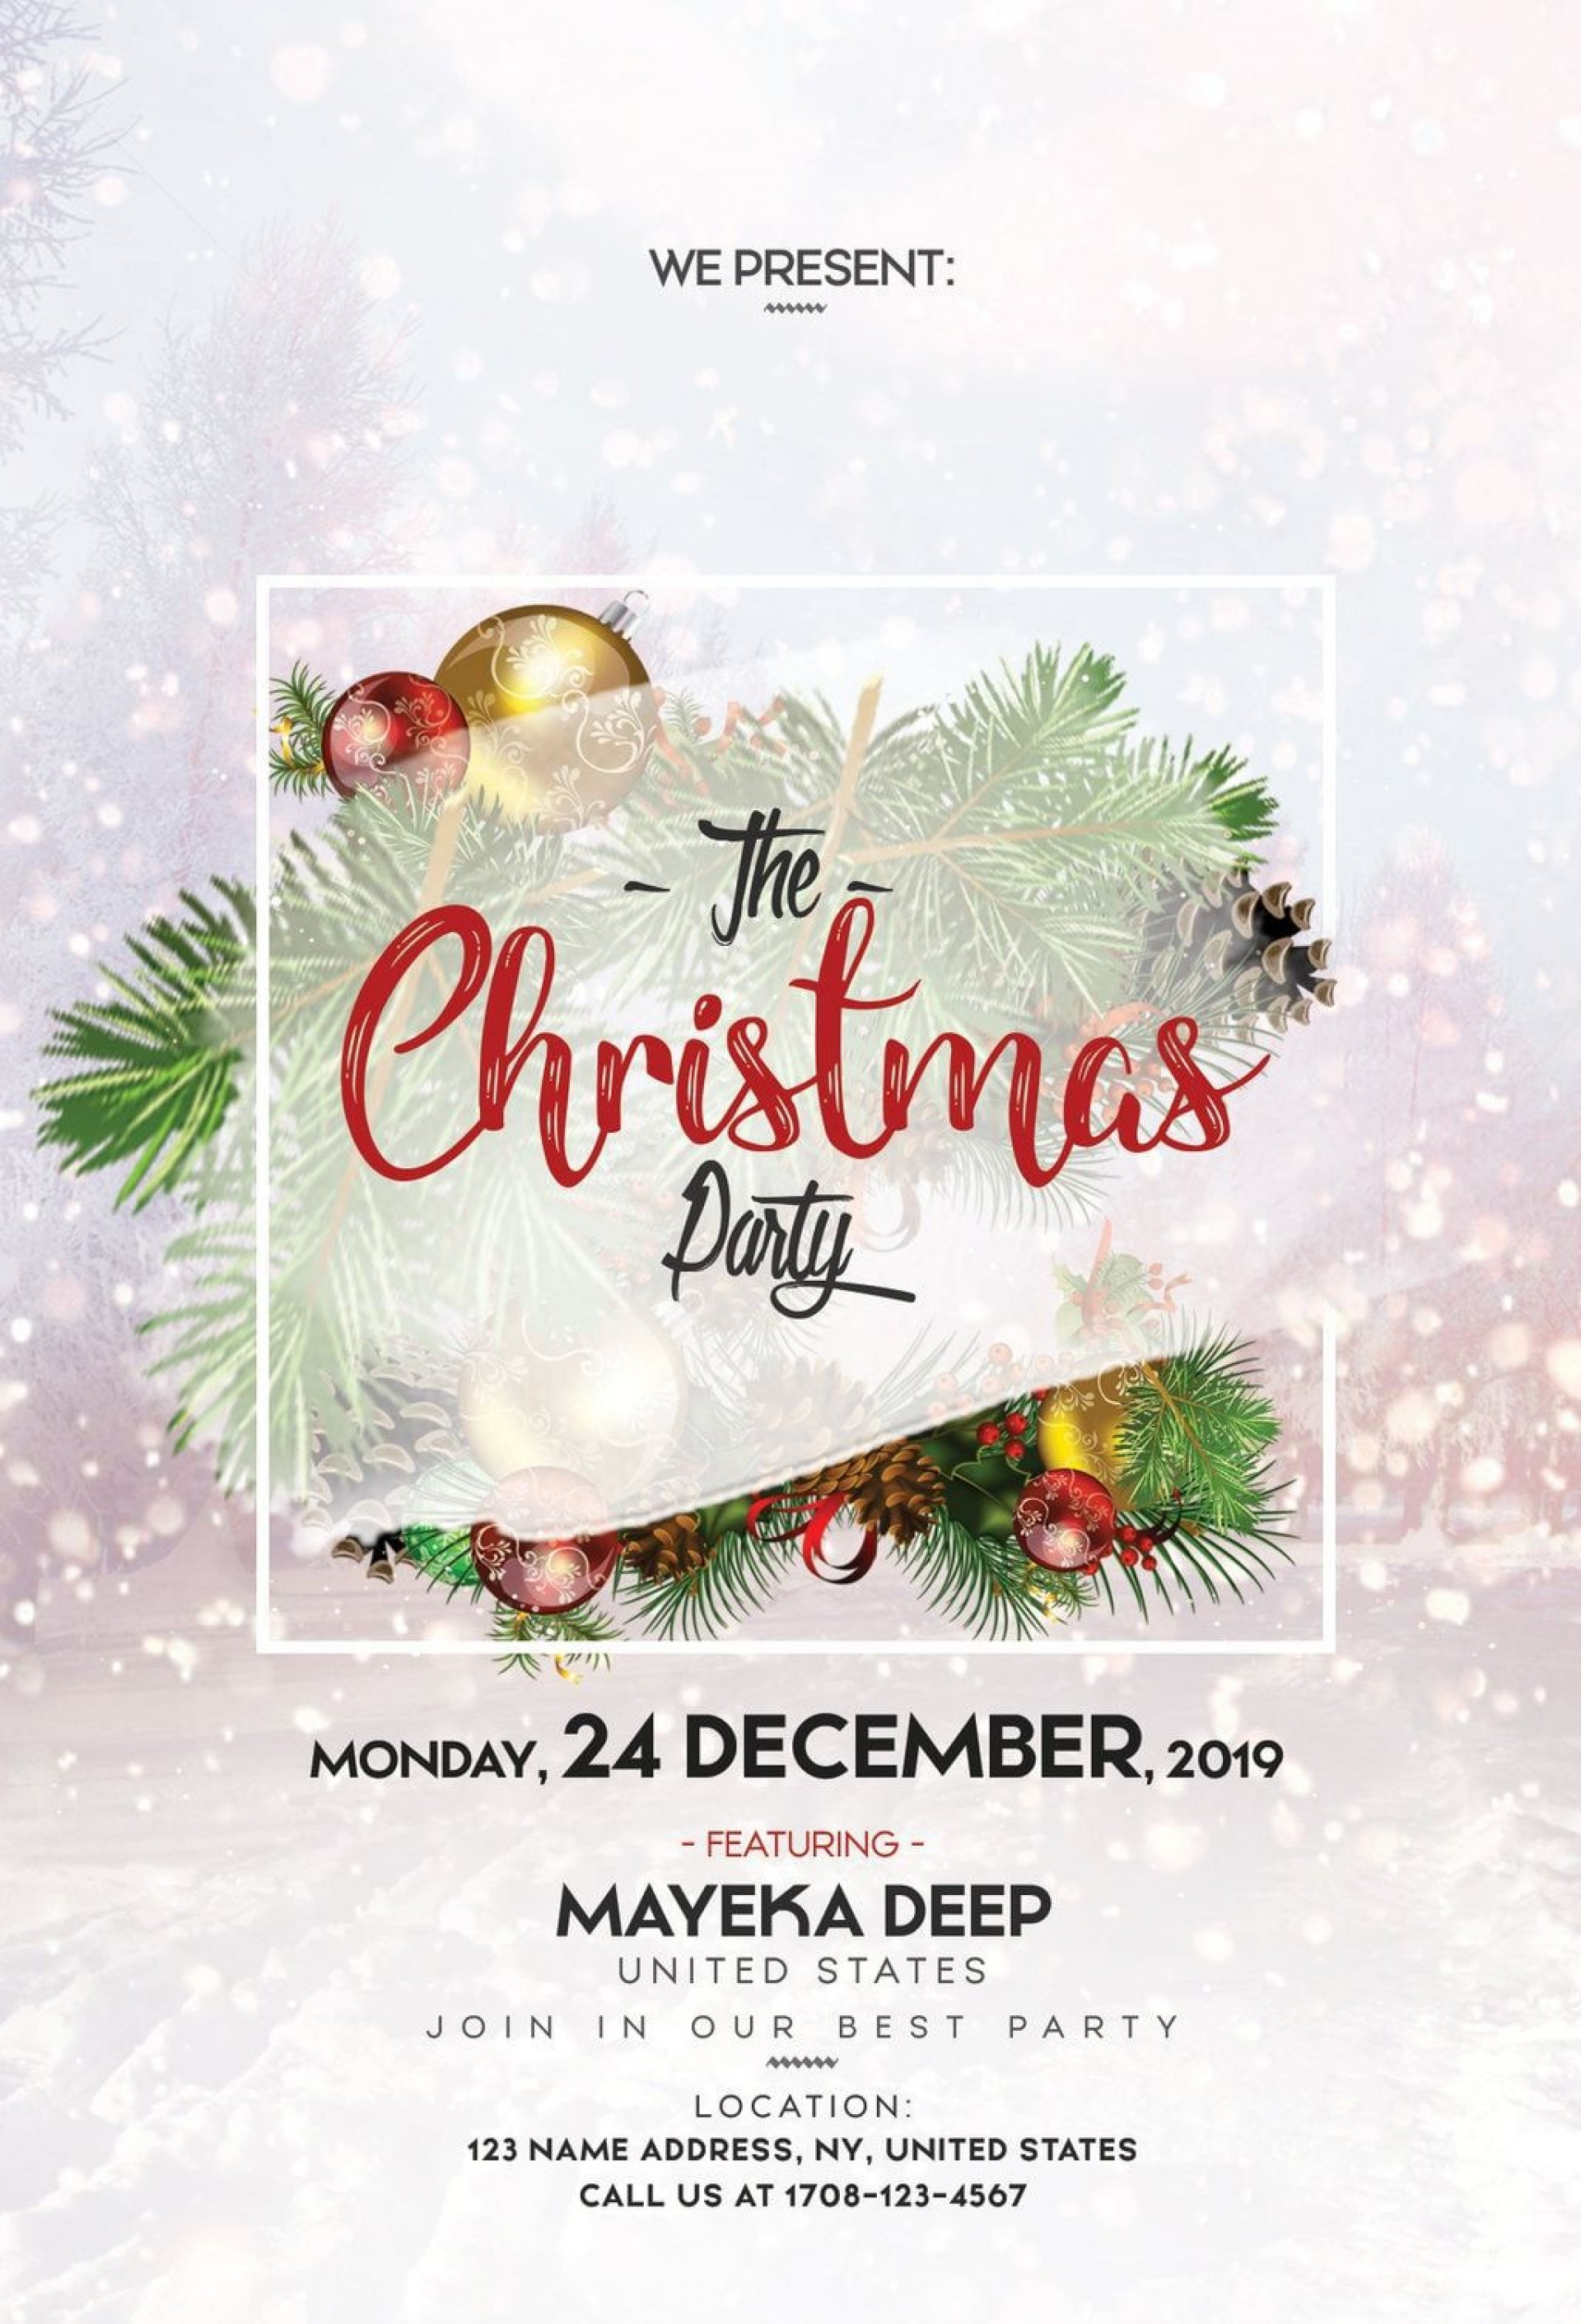 004 Staggering Free Christma Poster Template High Def  Uk Party Download Fair1920